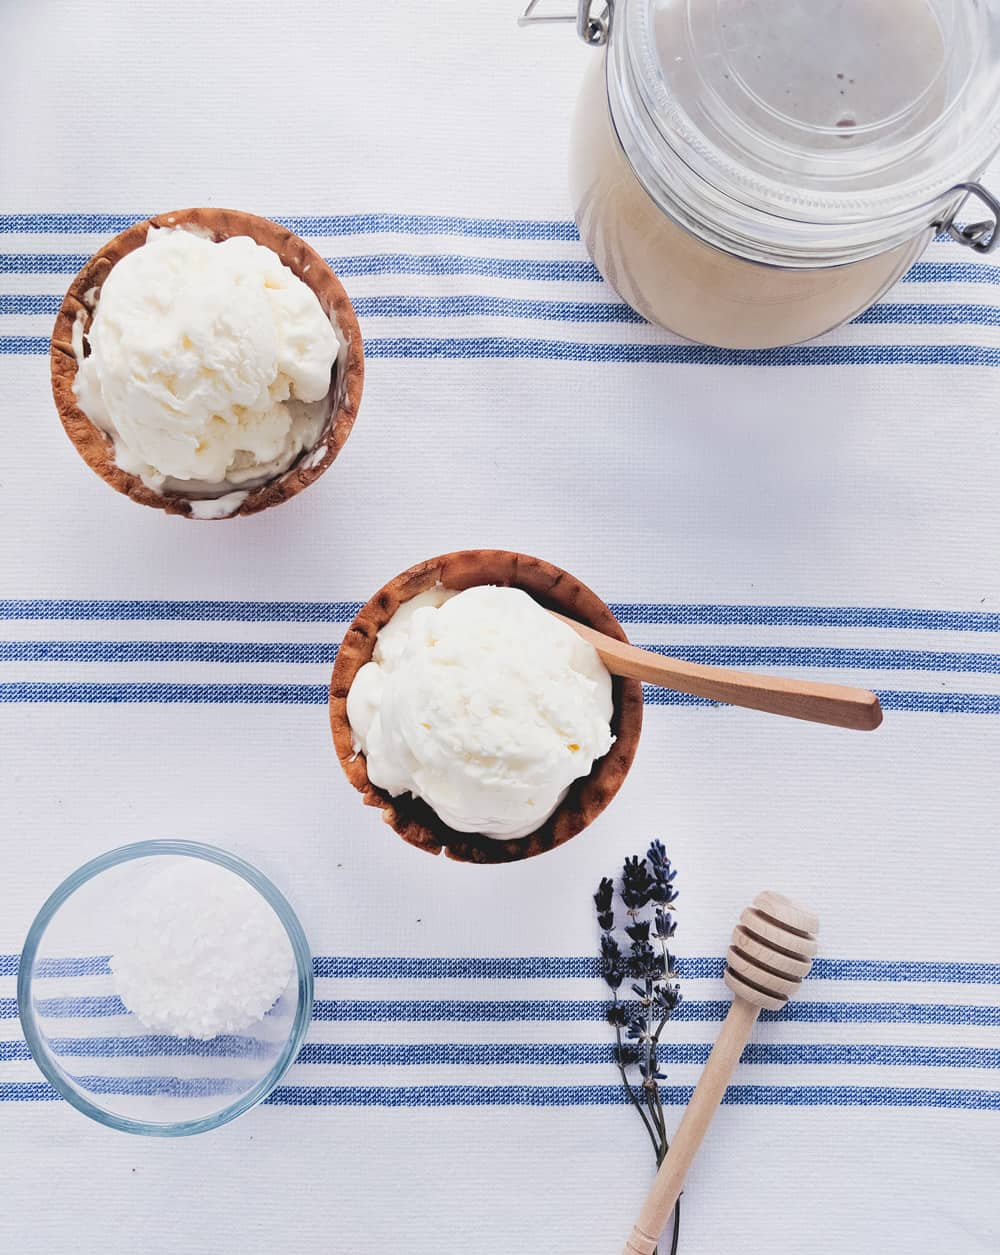 Make this easy no churn ice cream with just 4 simple ingredients.